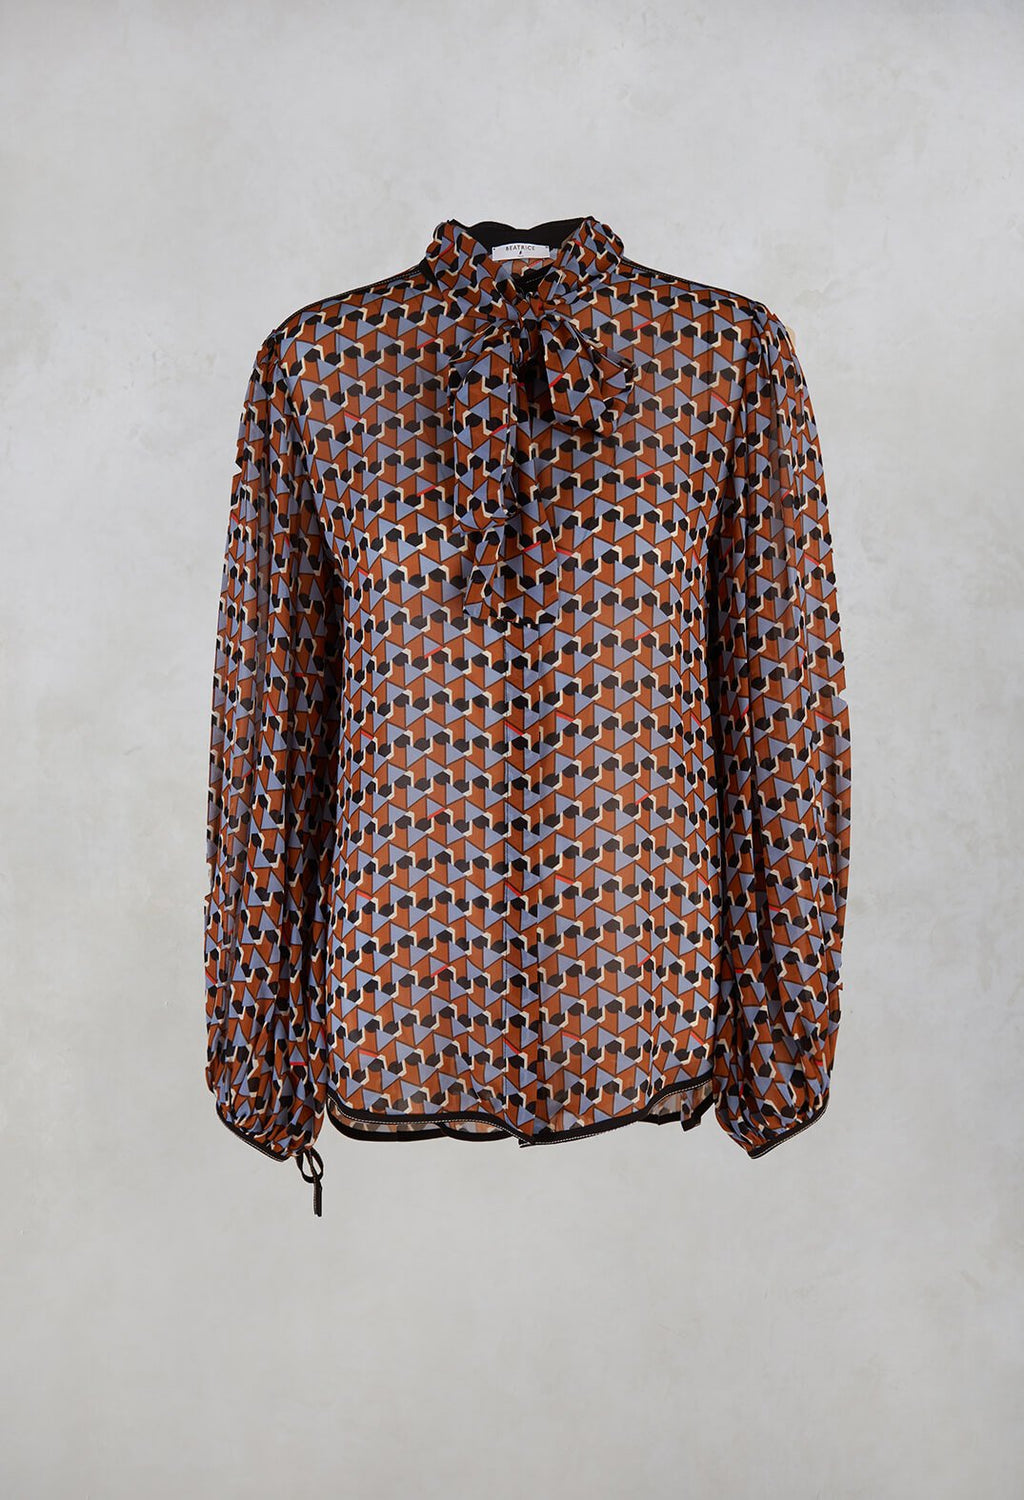 Printed Blouse in Brown